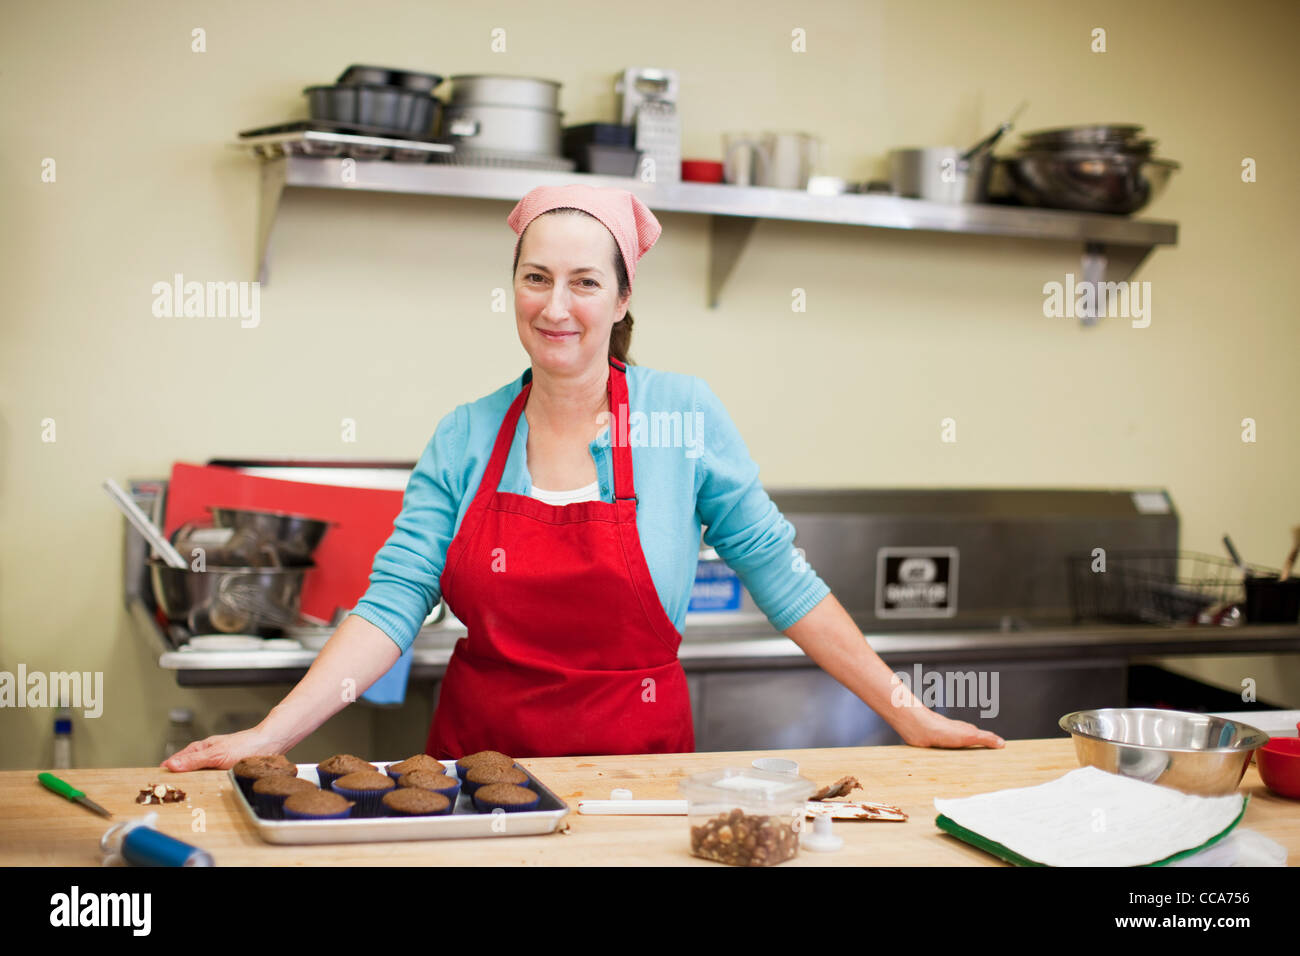 Portrait of woman working in bakery - Stock Image